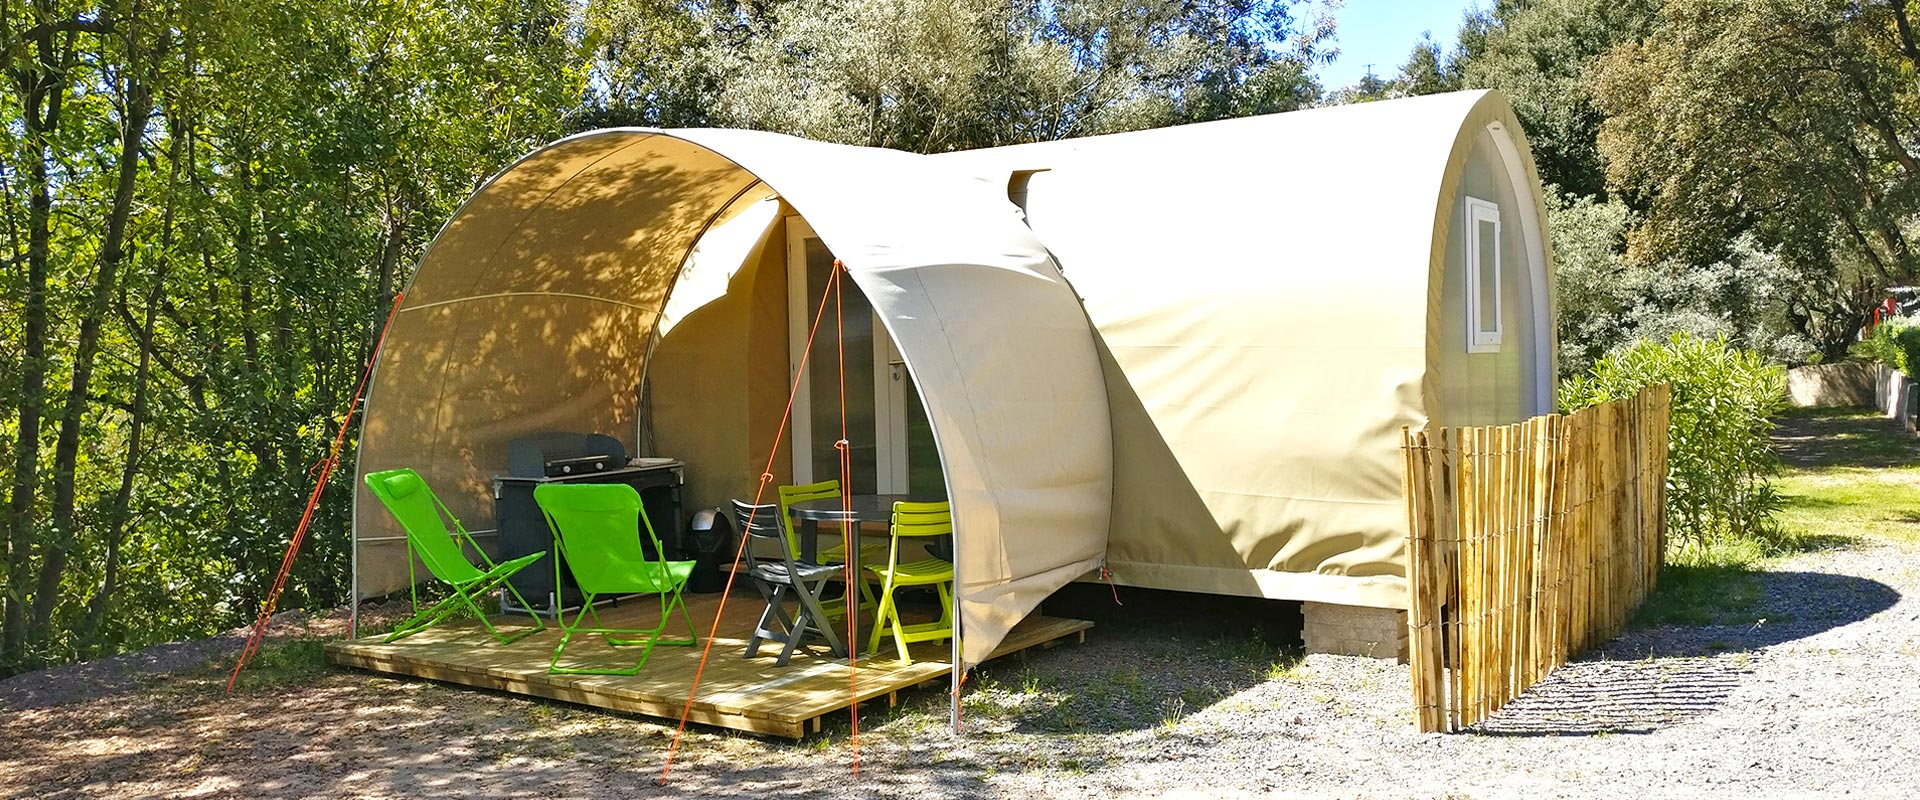 Le coco sweet 4 personnes - Camping les Philippons